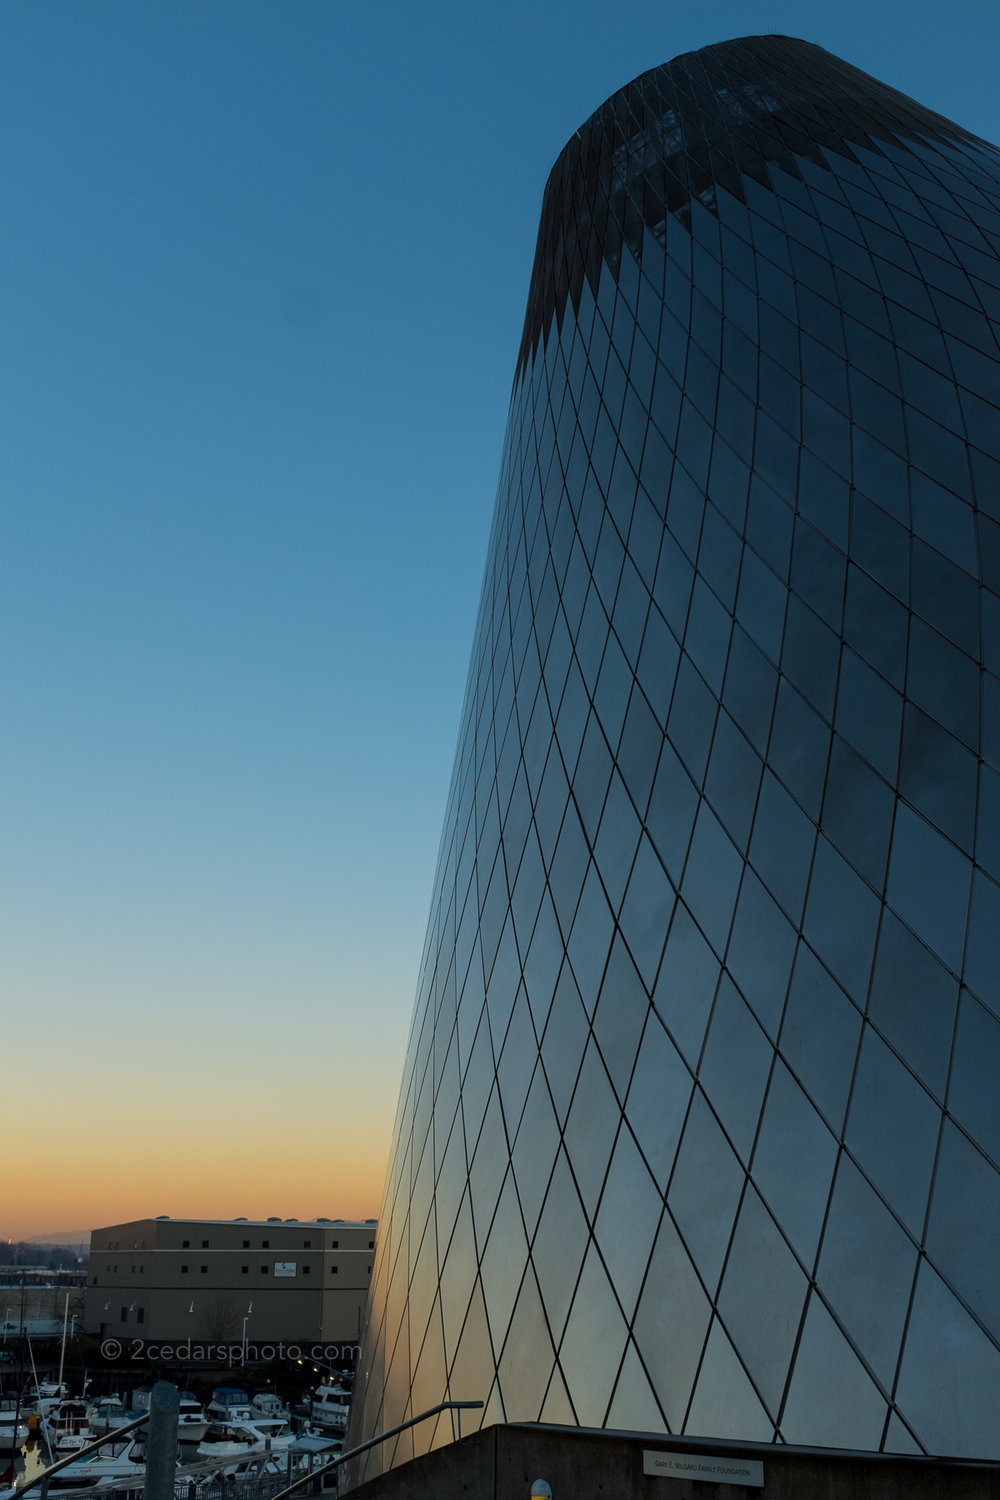 2 Cedars Photography Museum of Glass Cone and marina at sunset in Tacoma, WA